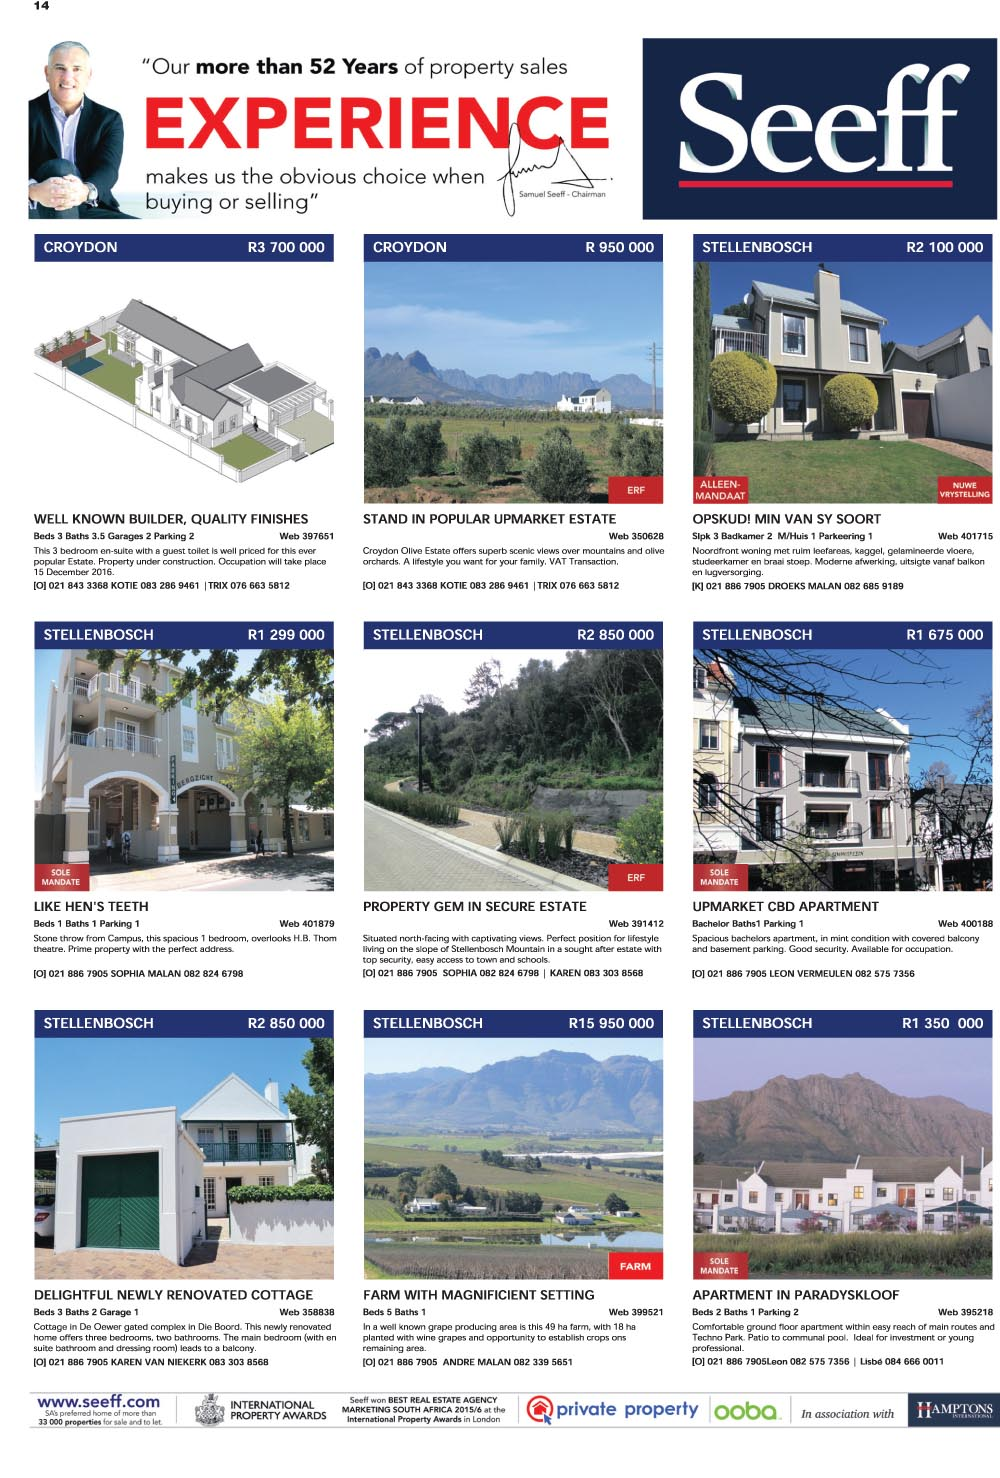 You are browsing images from the article: Property Selection 7thSeptember 2016